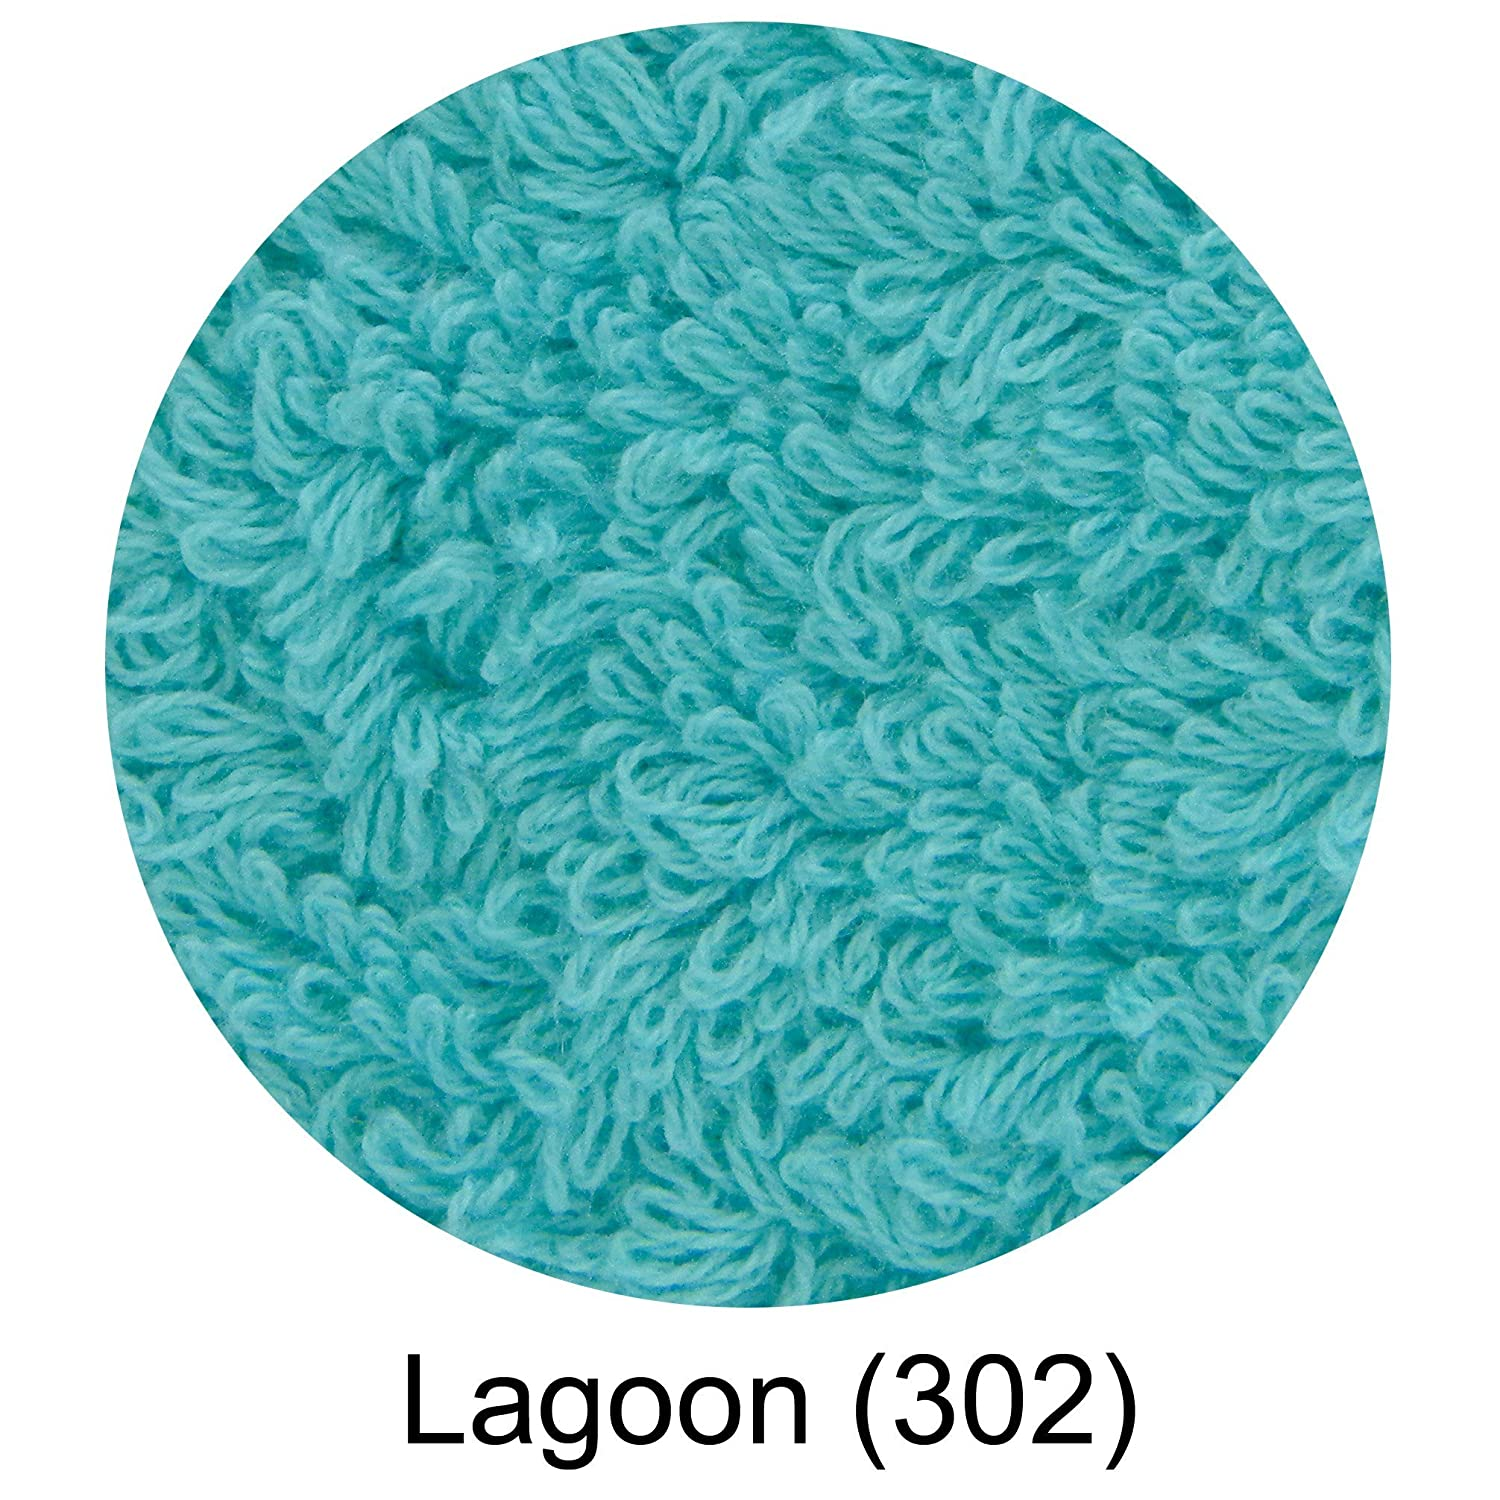 Abyss & Habidecor.- Toalla Super Pile Color Lagoon 302 en medida 60x110 cm: Amazon.es: Hogar